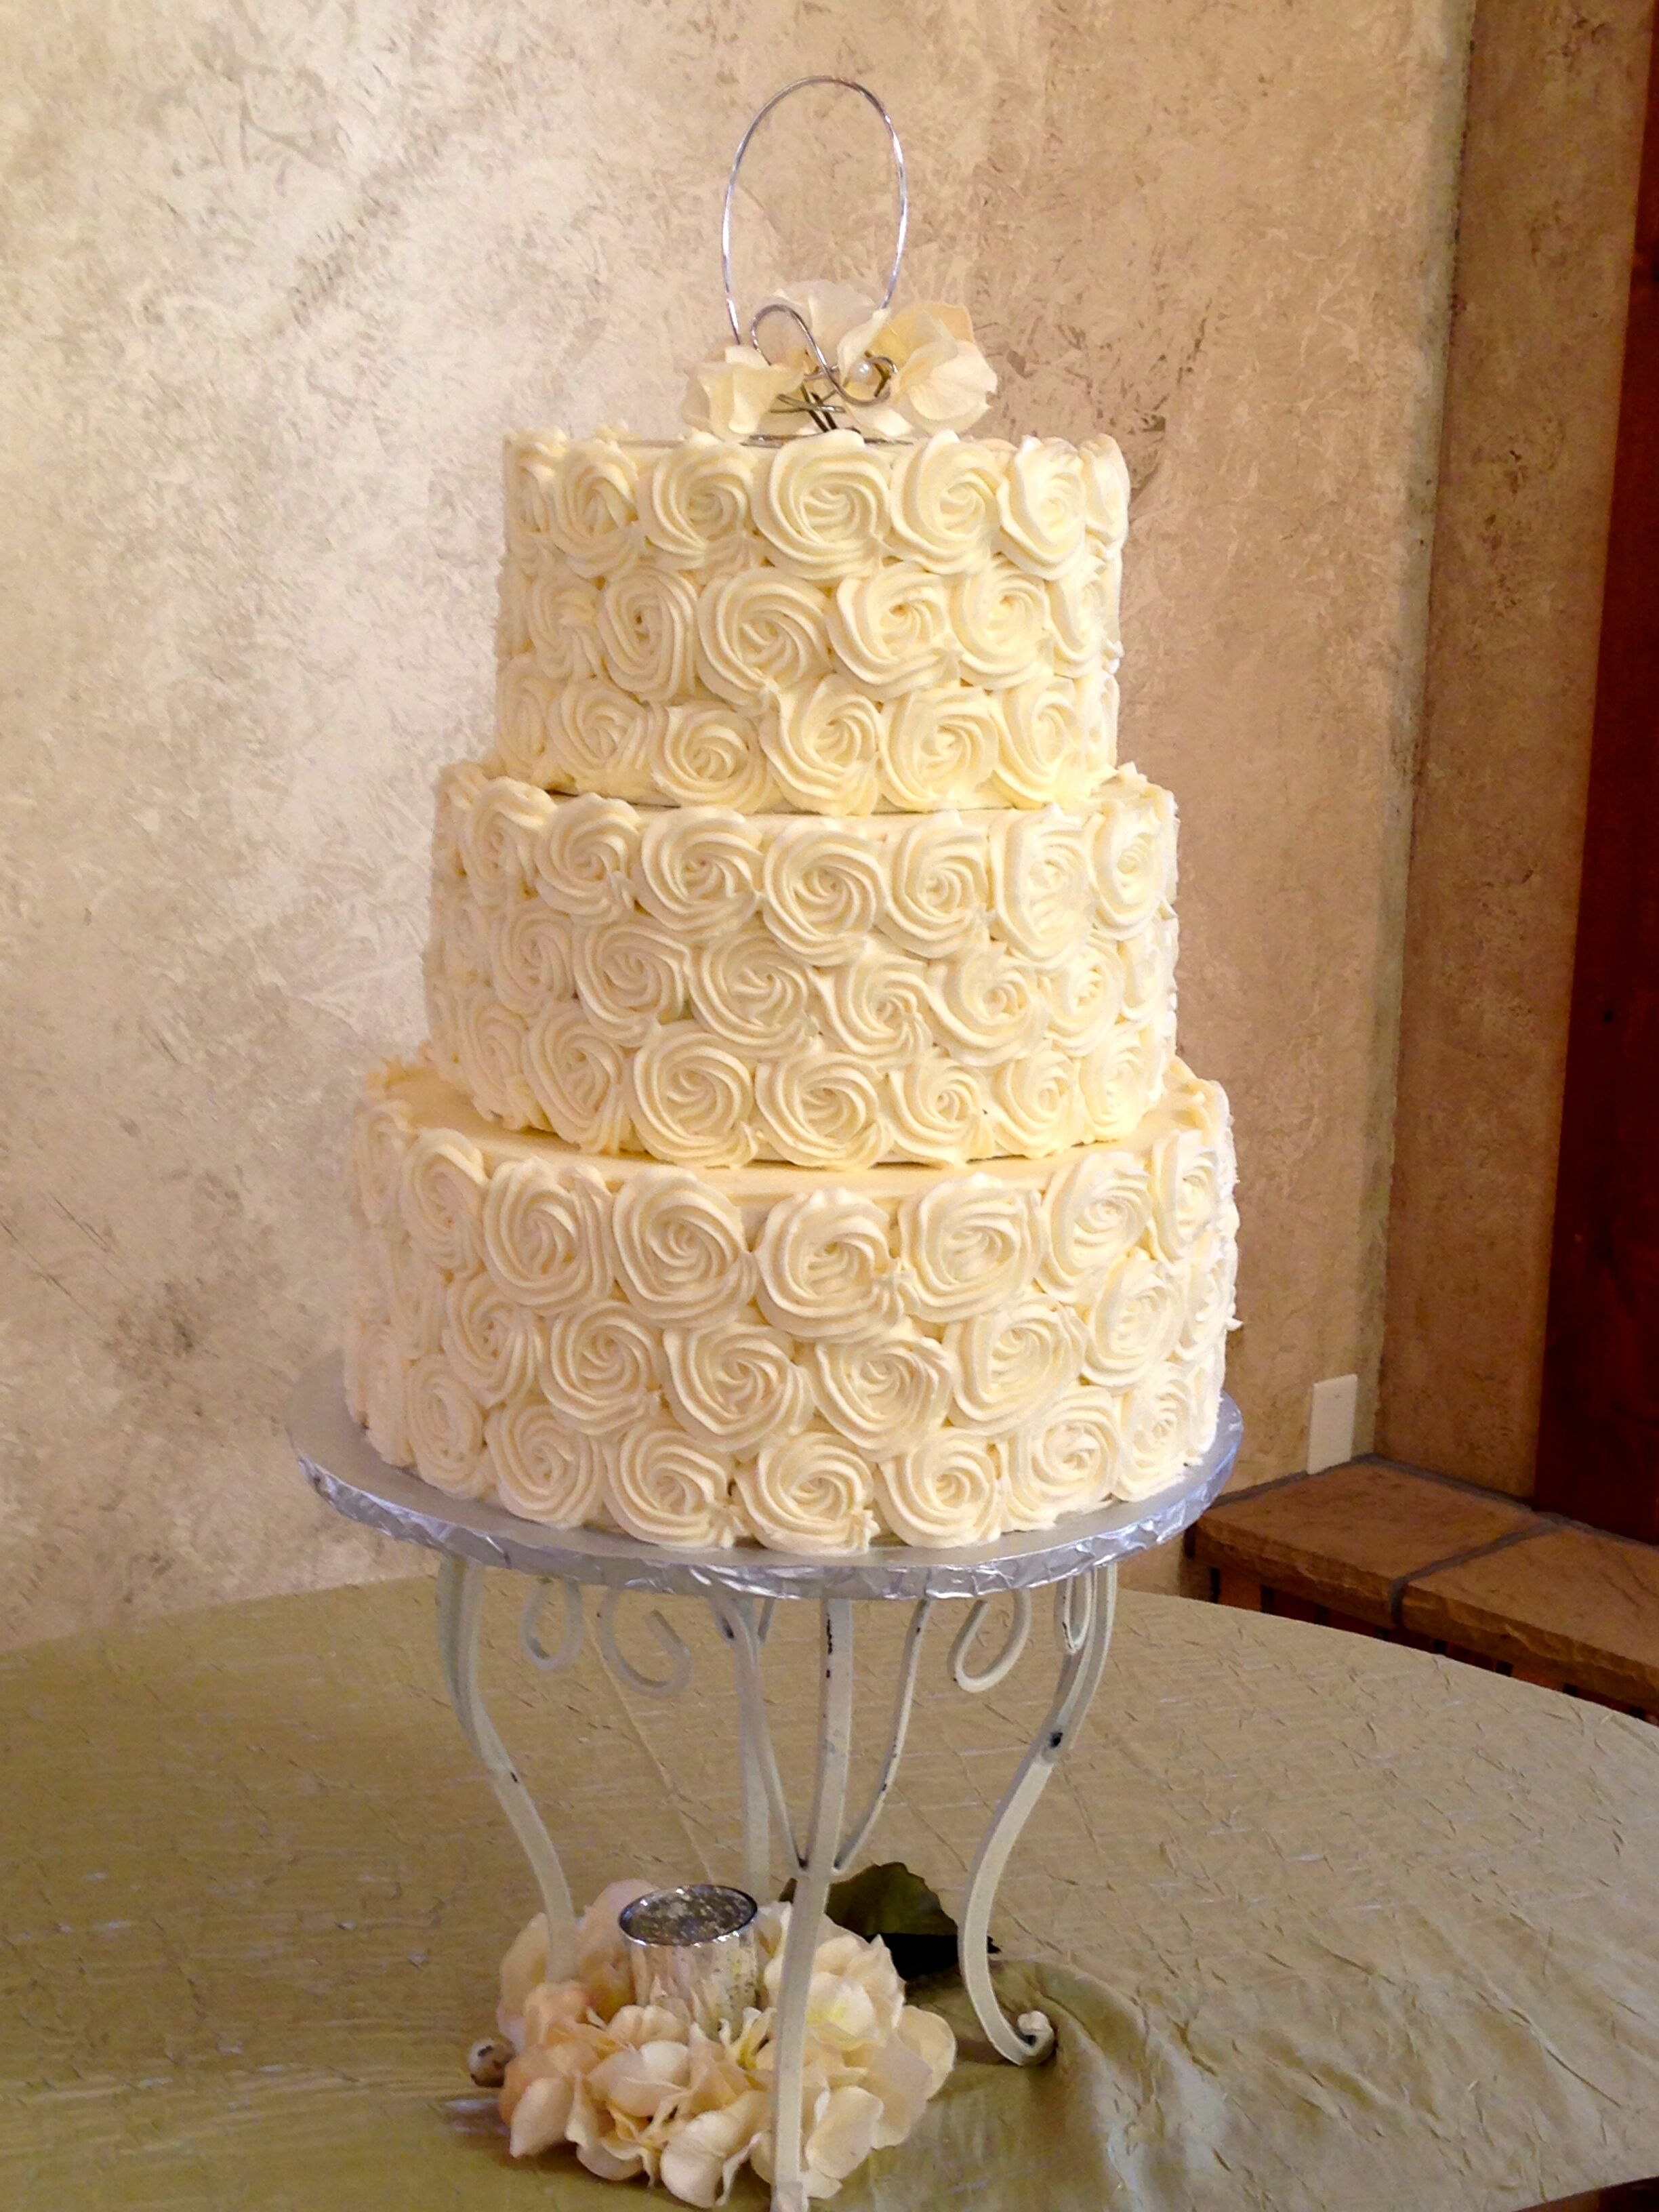 Wedding Cake Bakeries in Fort Collins, CO - The Knot